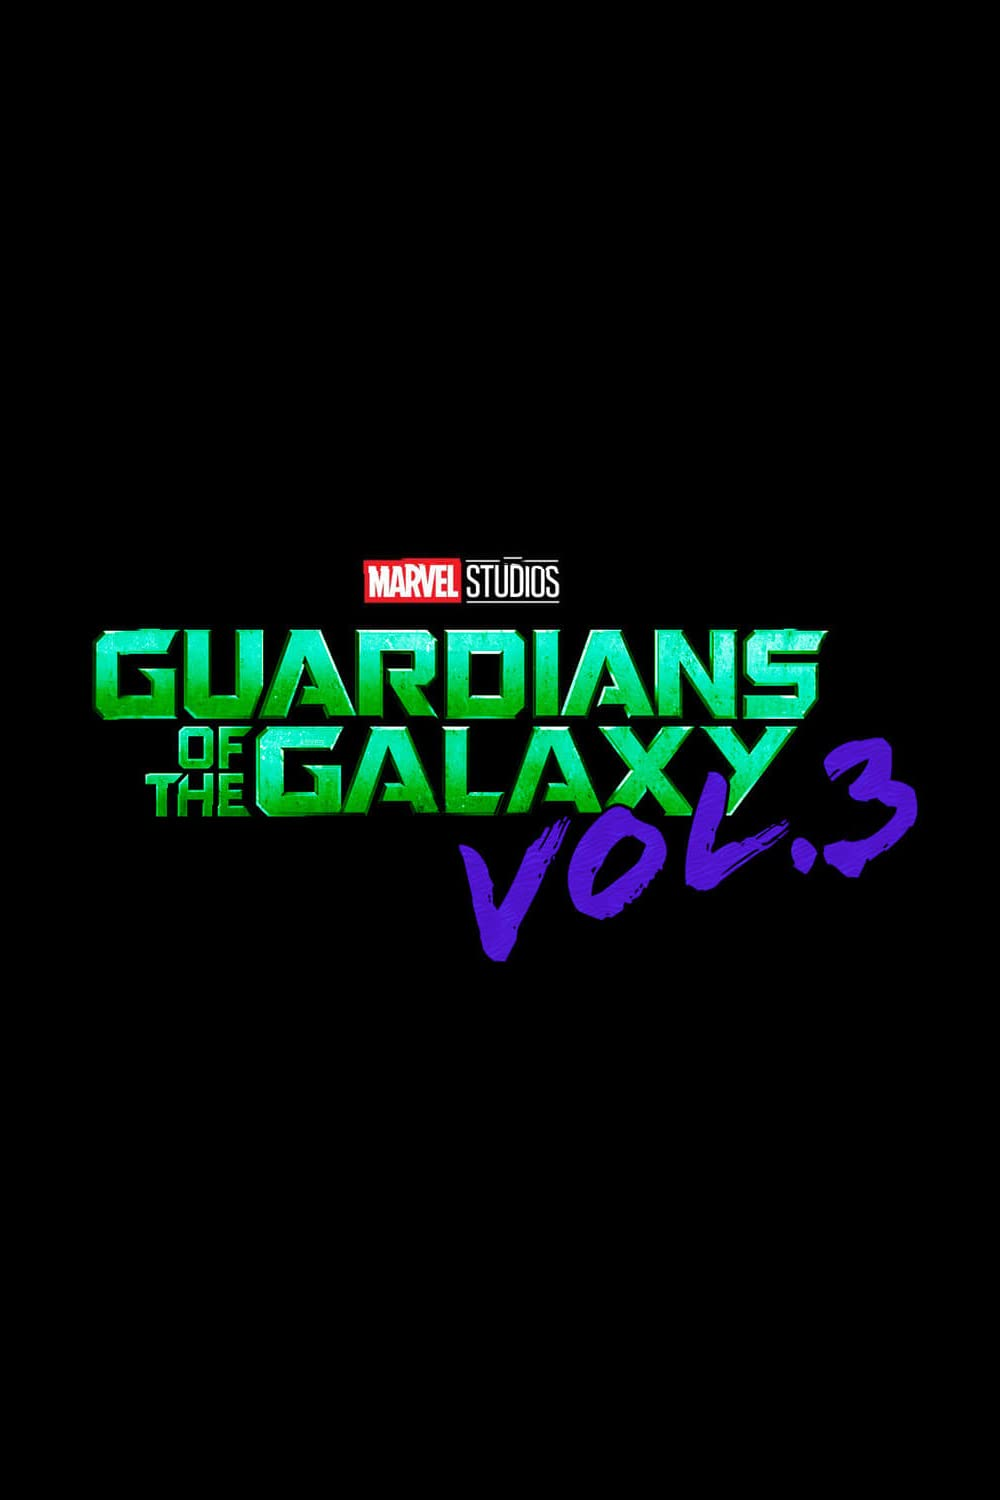 Guardians of the Galaxy Vol. 3 poster